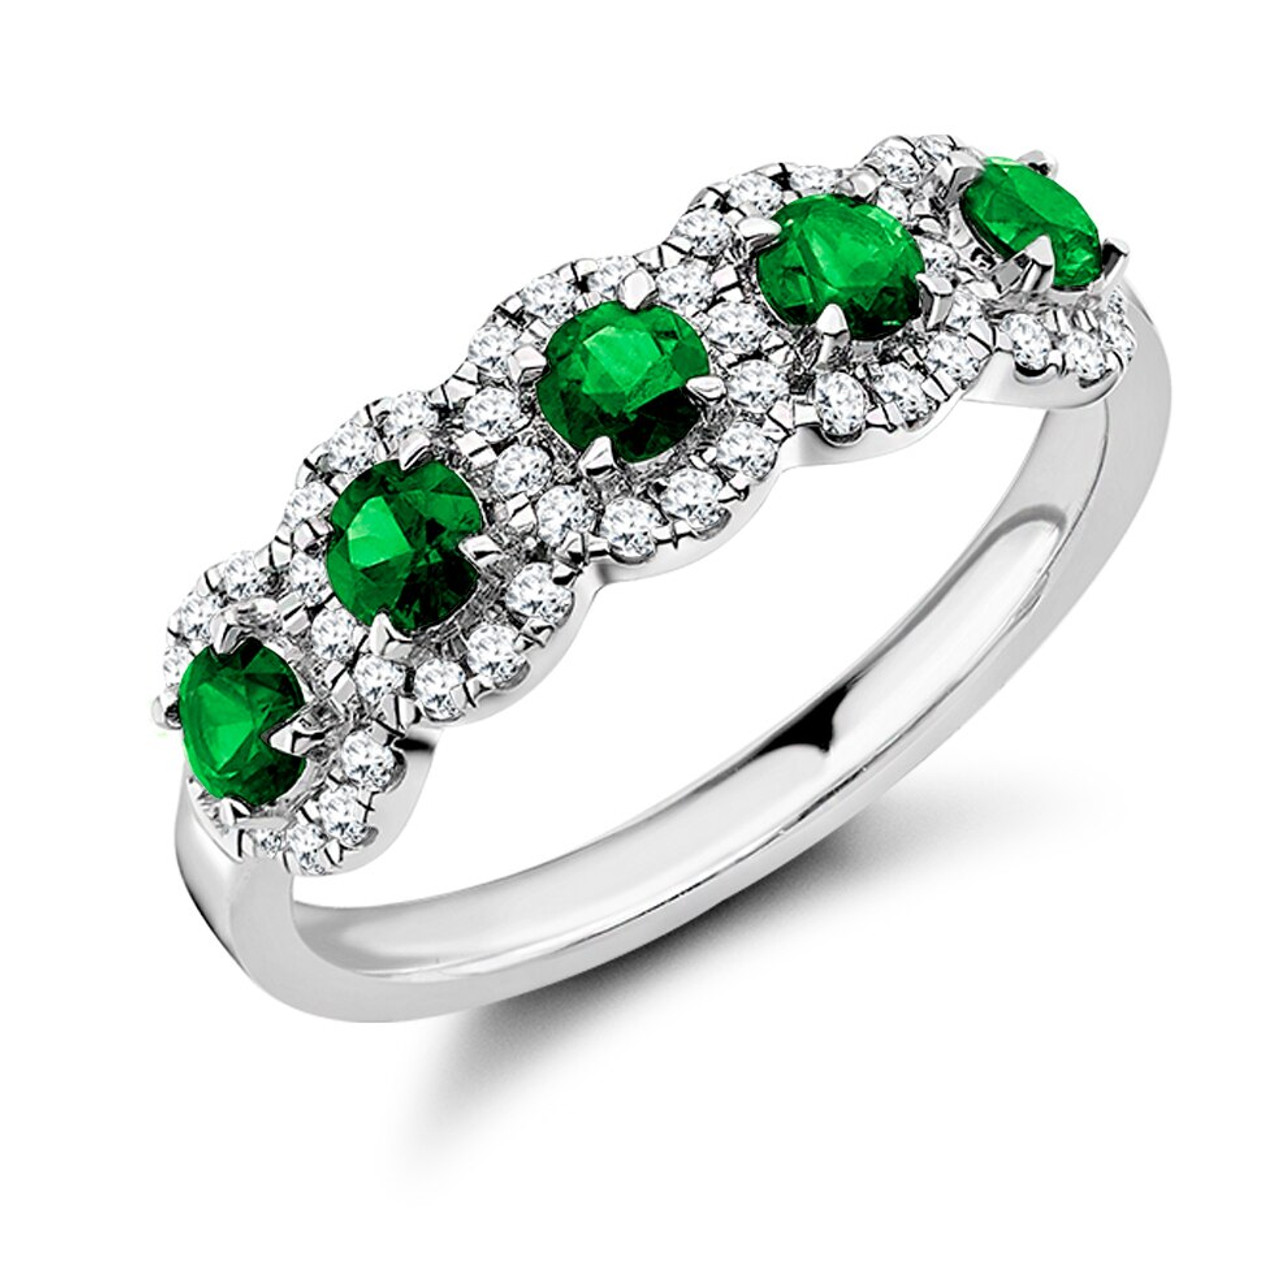 Platinum Emerald & Diamond 5 stone Cluster Ring